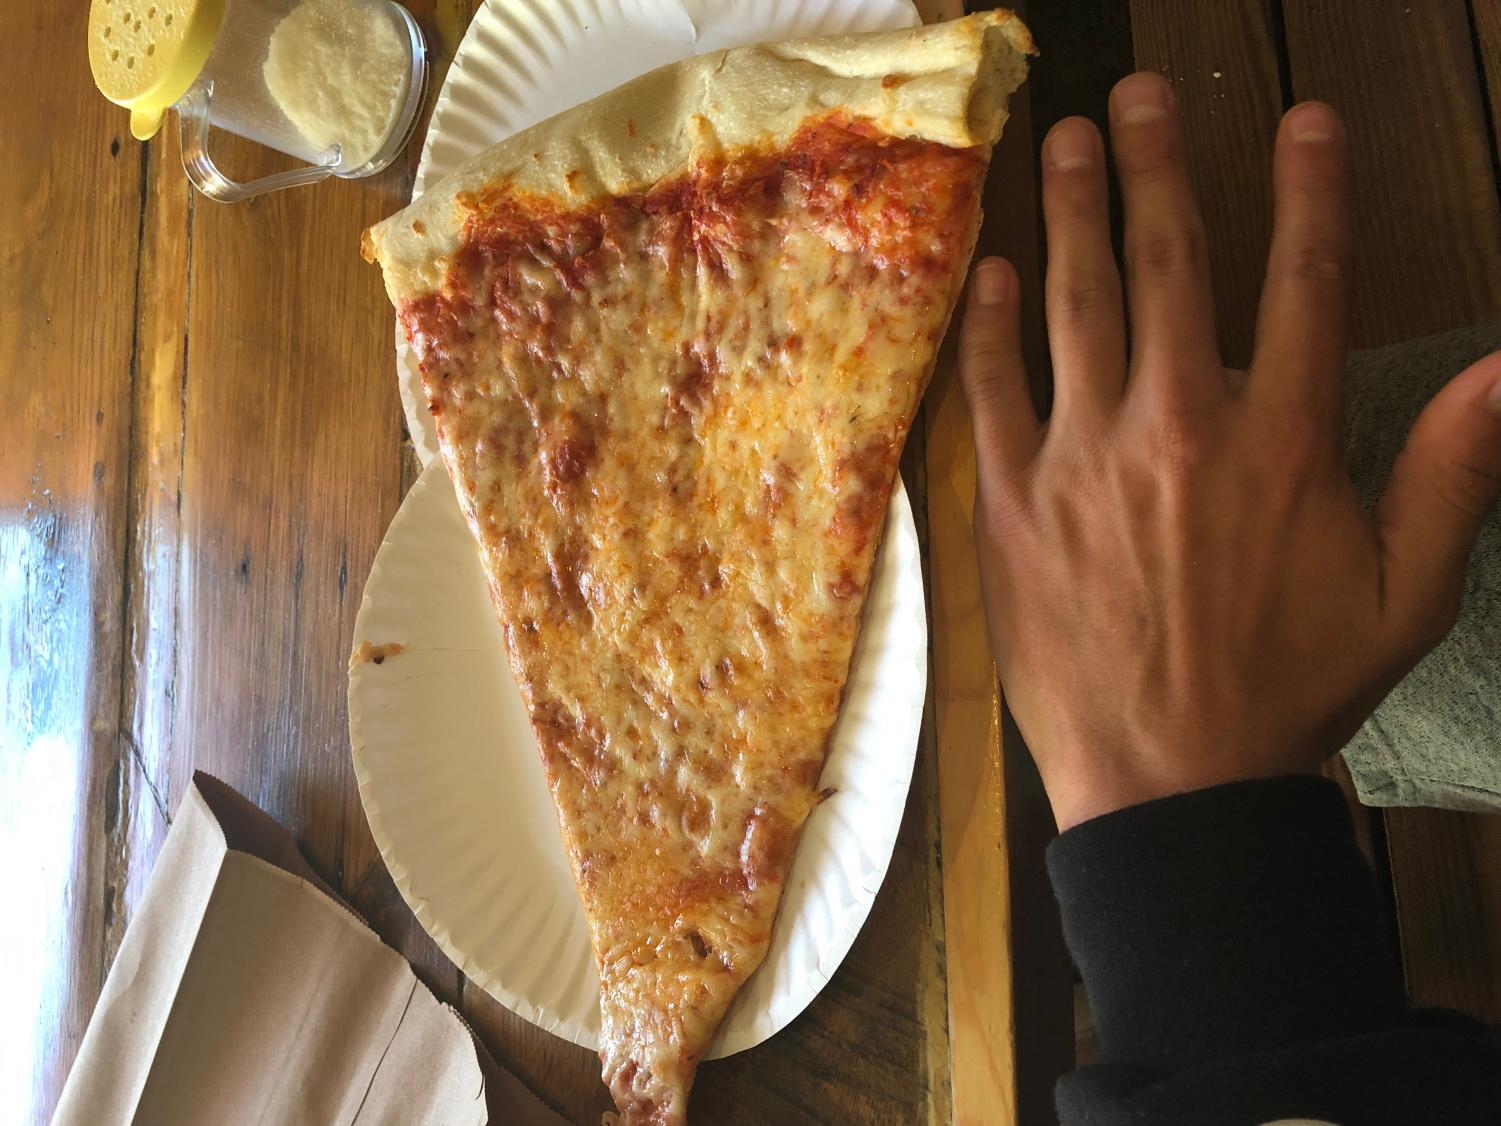 A slice of Benny de Luca's pizza in comparison with my hand.